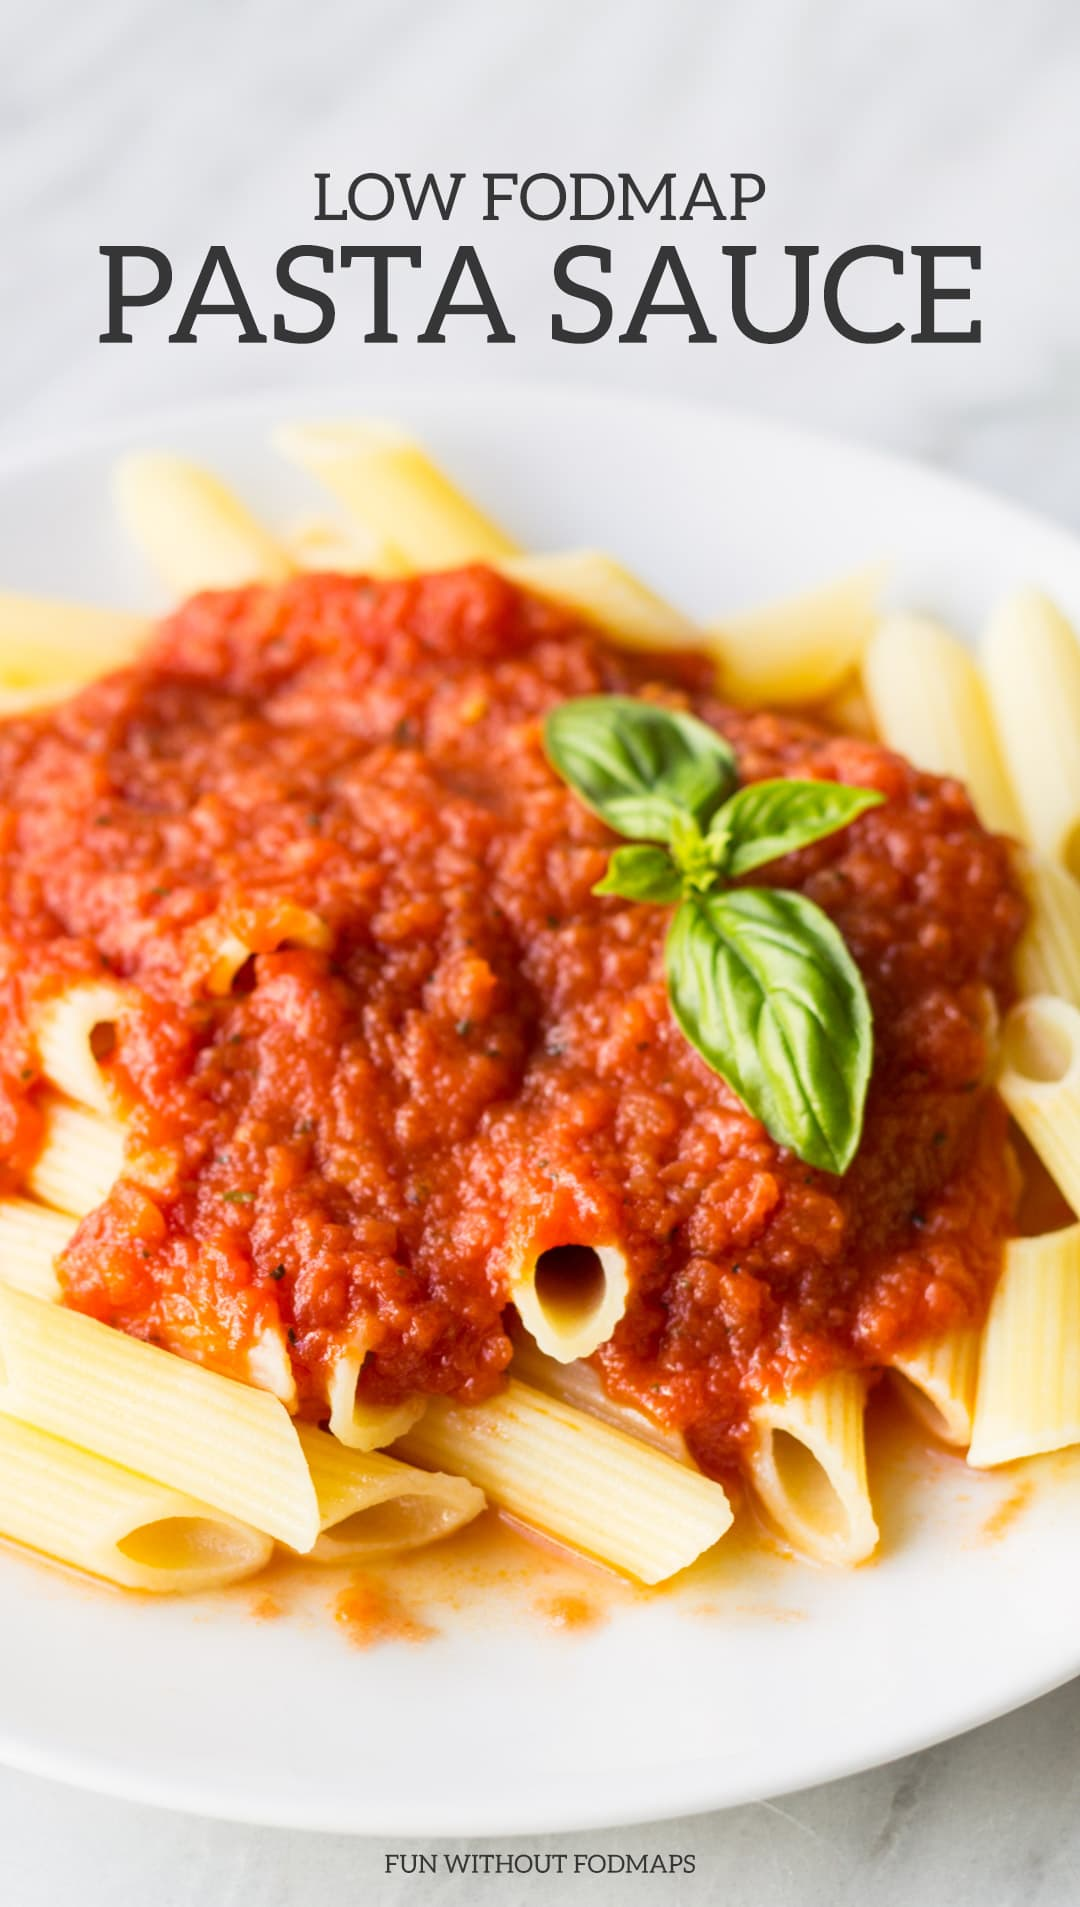 Low FODMAP Pasta Sauce